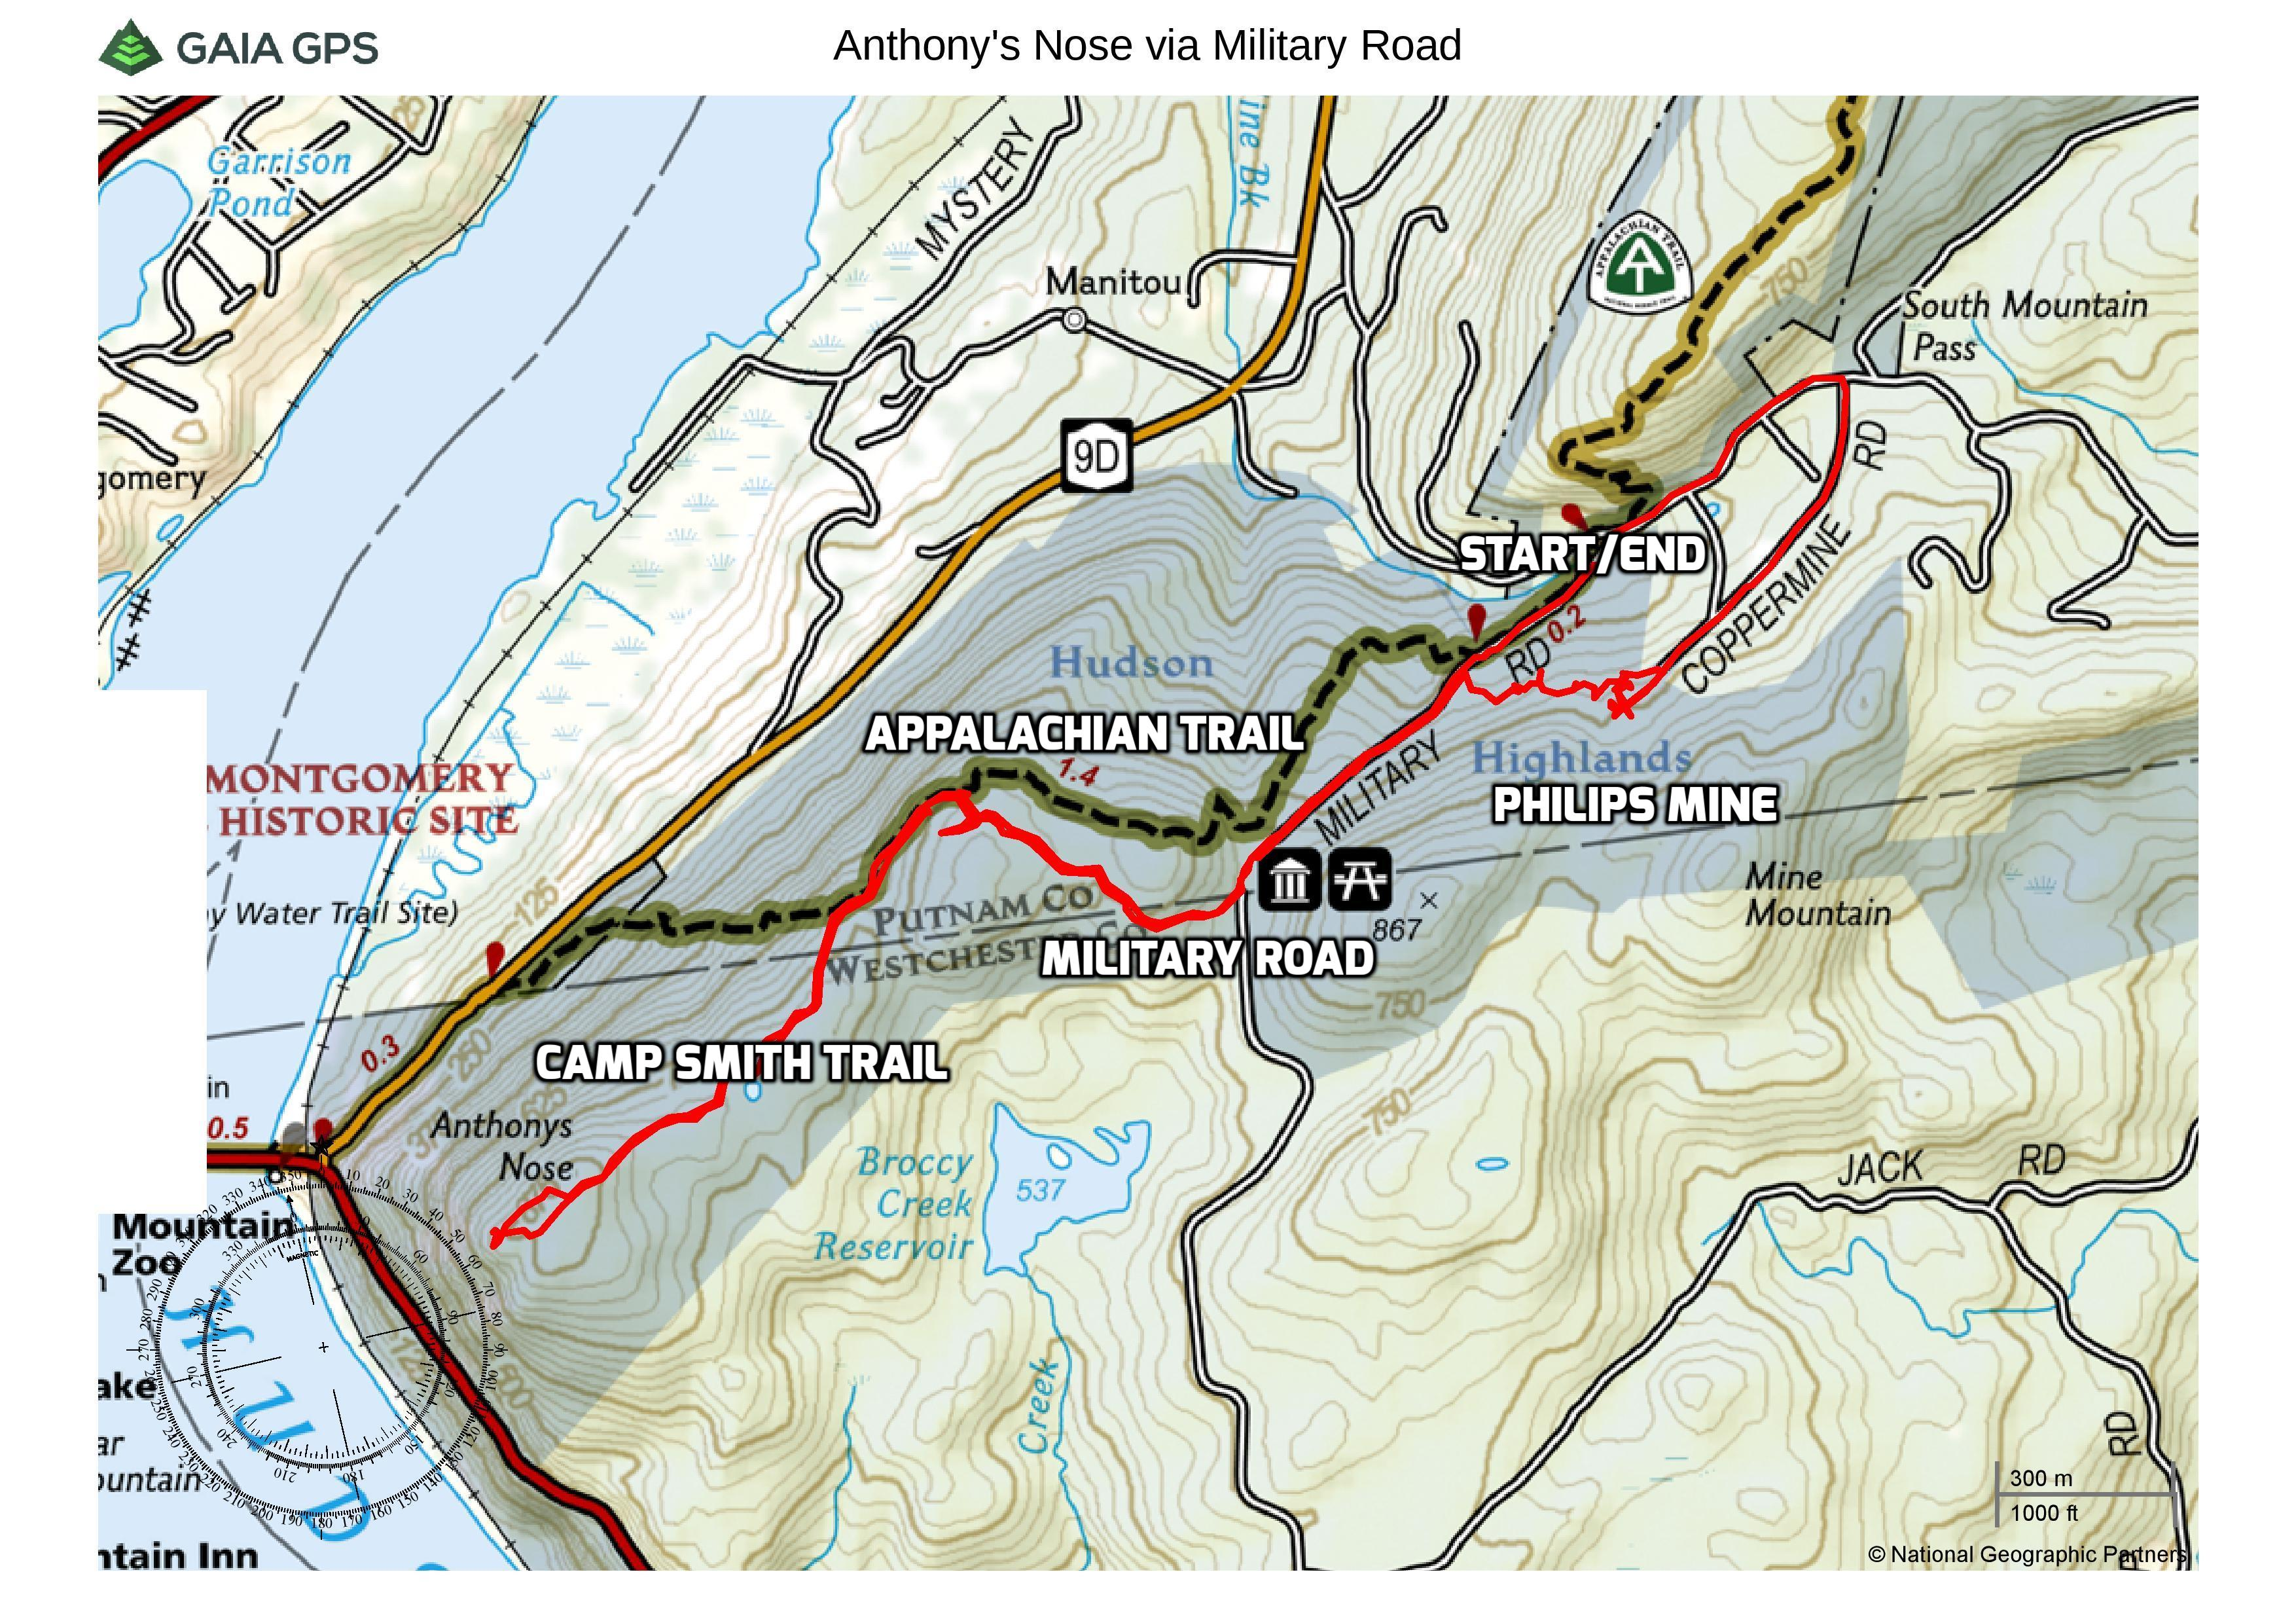 Anthony's Nose via Military Road